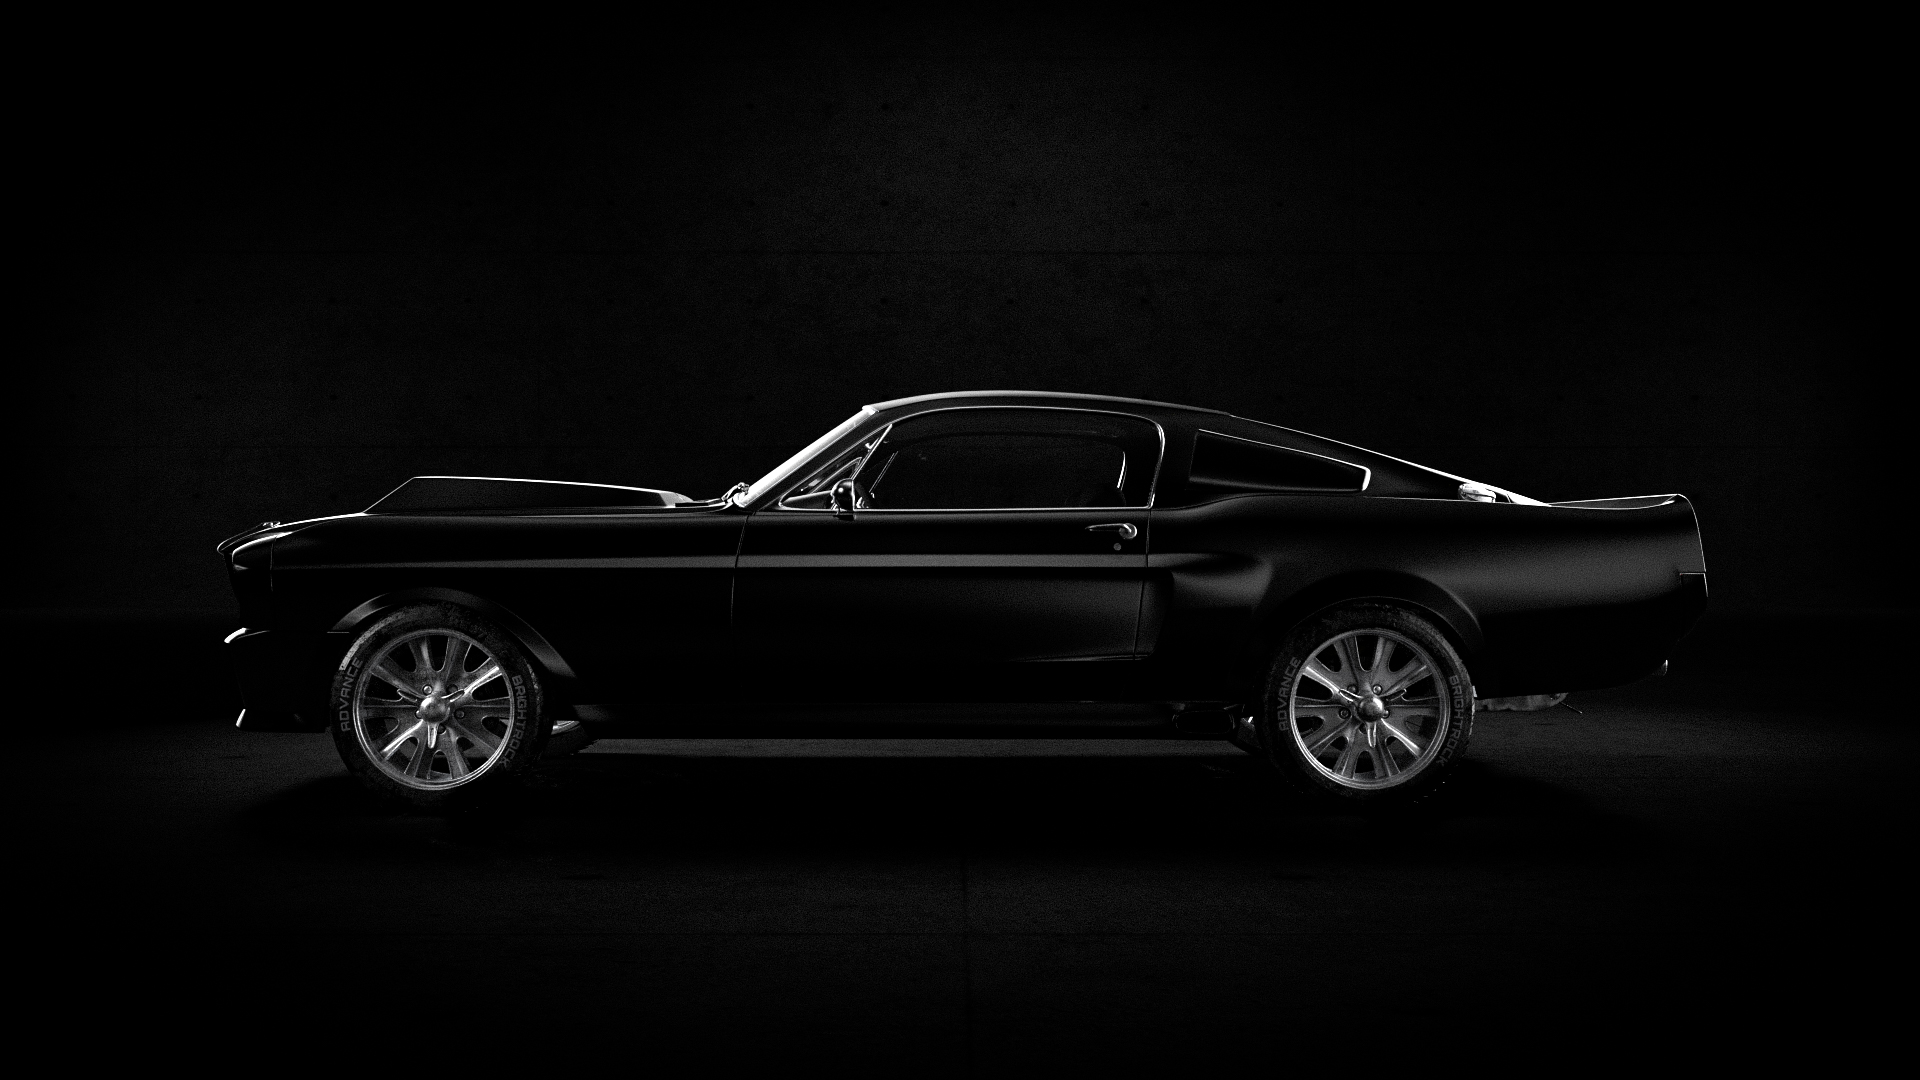 Shelby_Eleanor_blackandWhite_photography (3 of 3).jpg